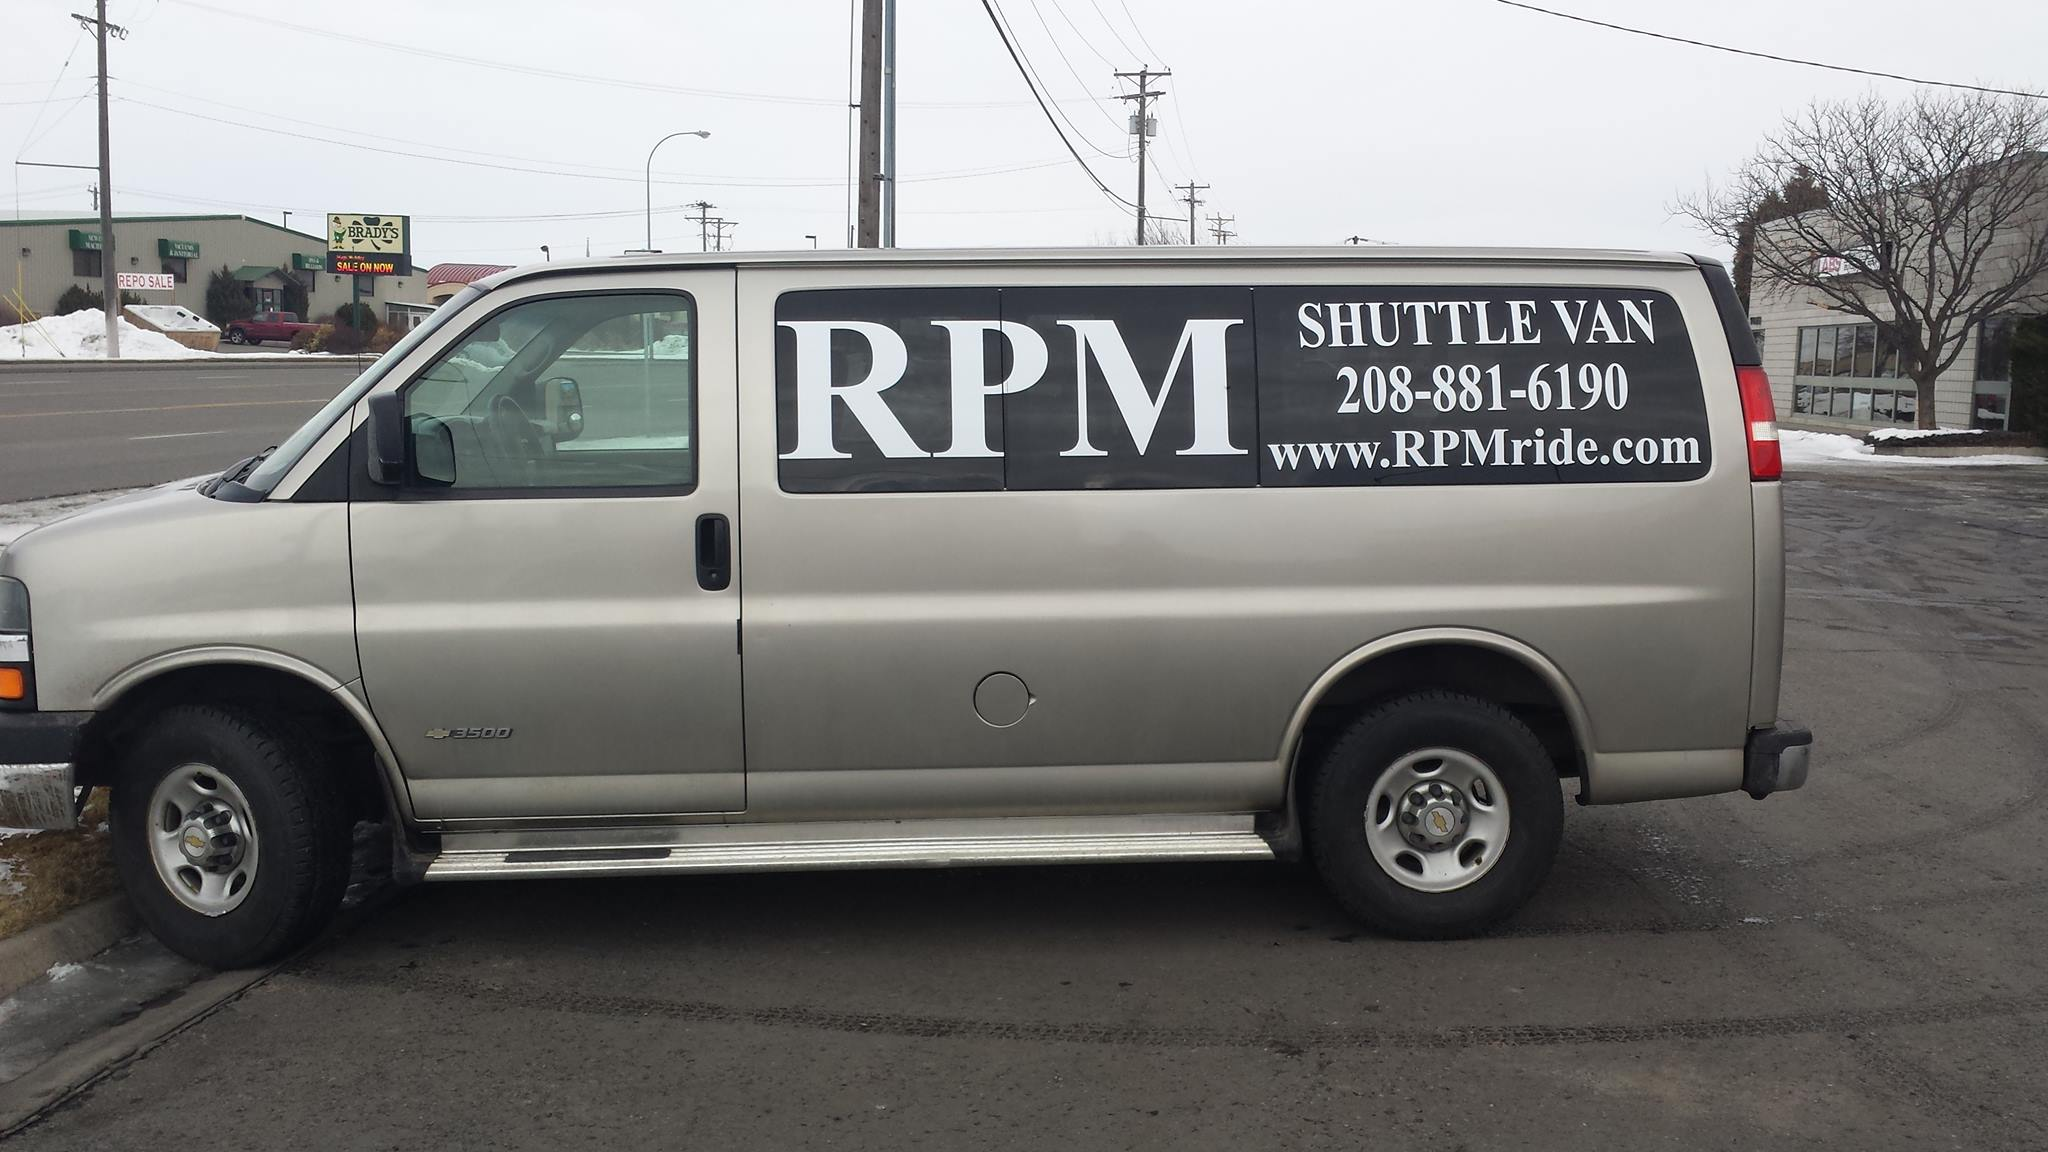 The RPM has many different stops and can take you around Rexburg.